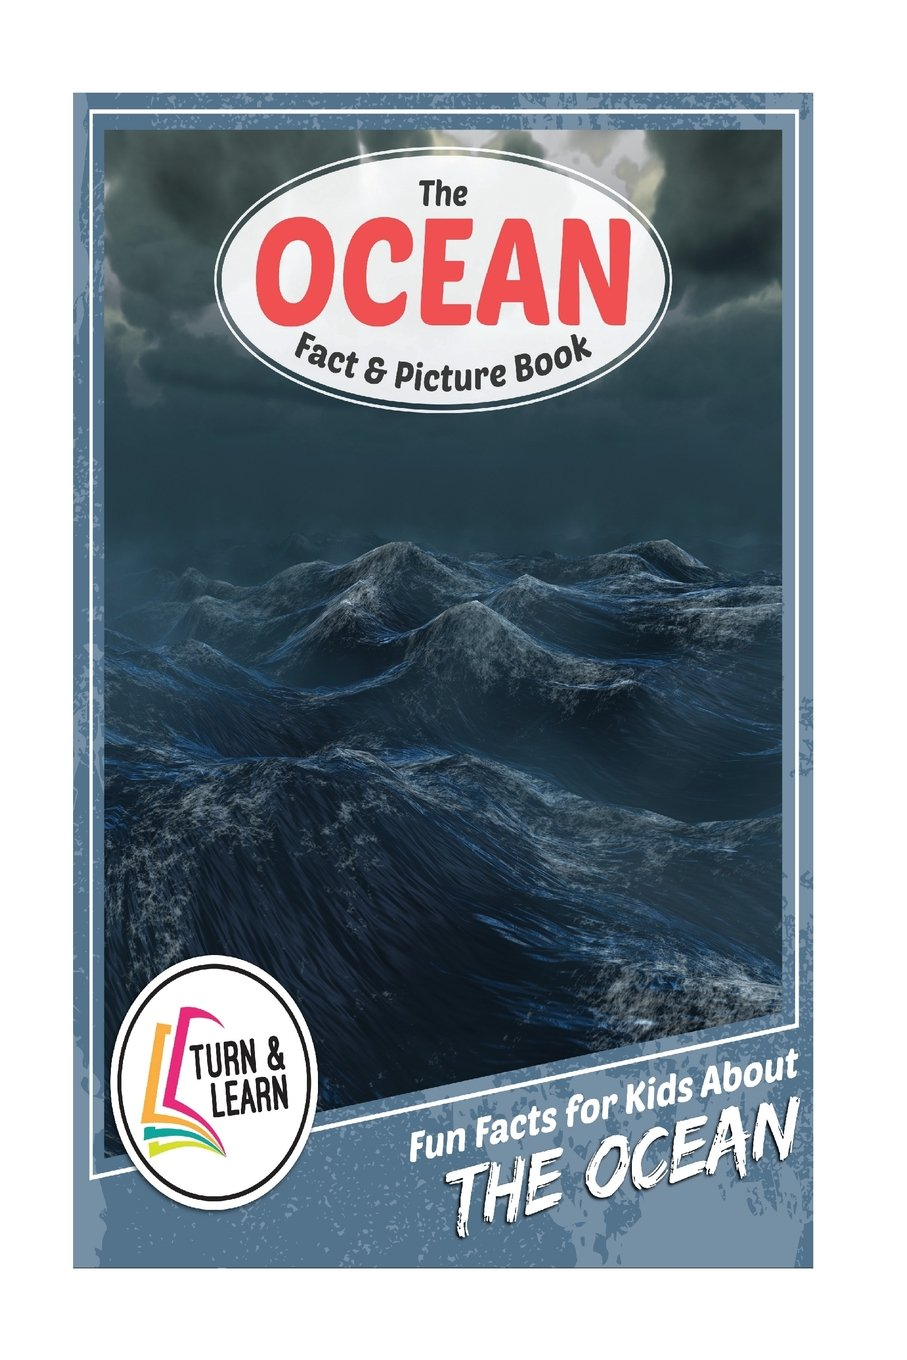 The Ocean Fact and Picture Book: Fun Facts for Kids About Oceans (Turn and Learn)